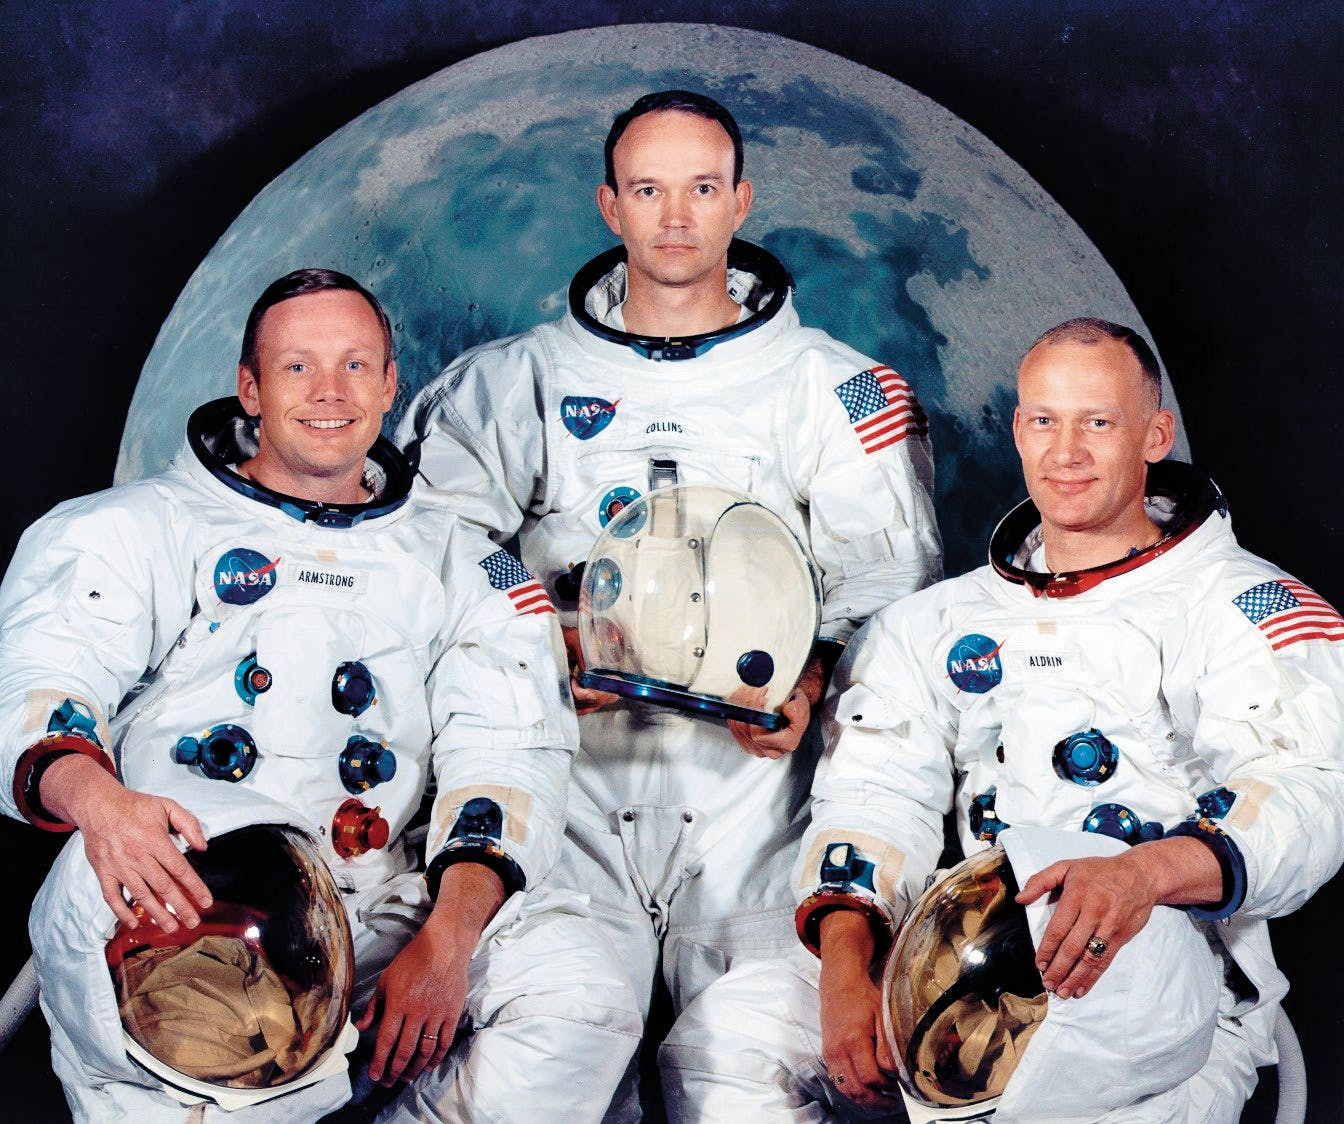 Armstrong, Michael Collins, and Aldrin pose for an official NASA portrait.